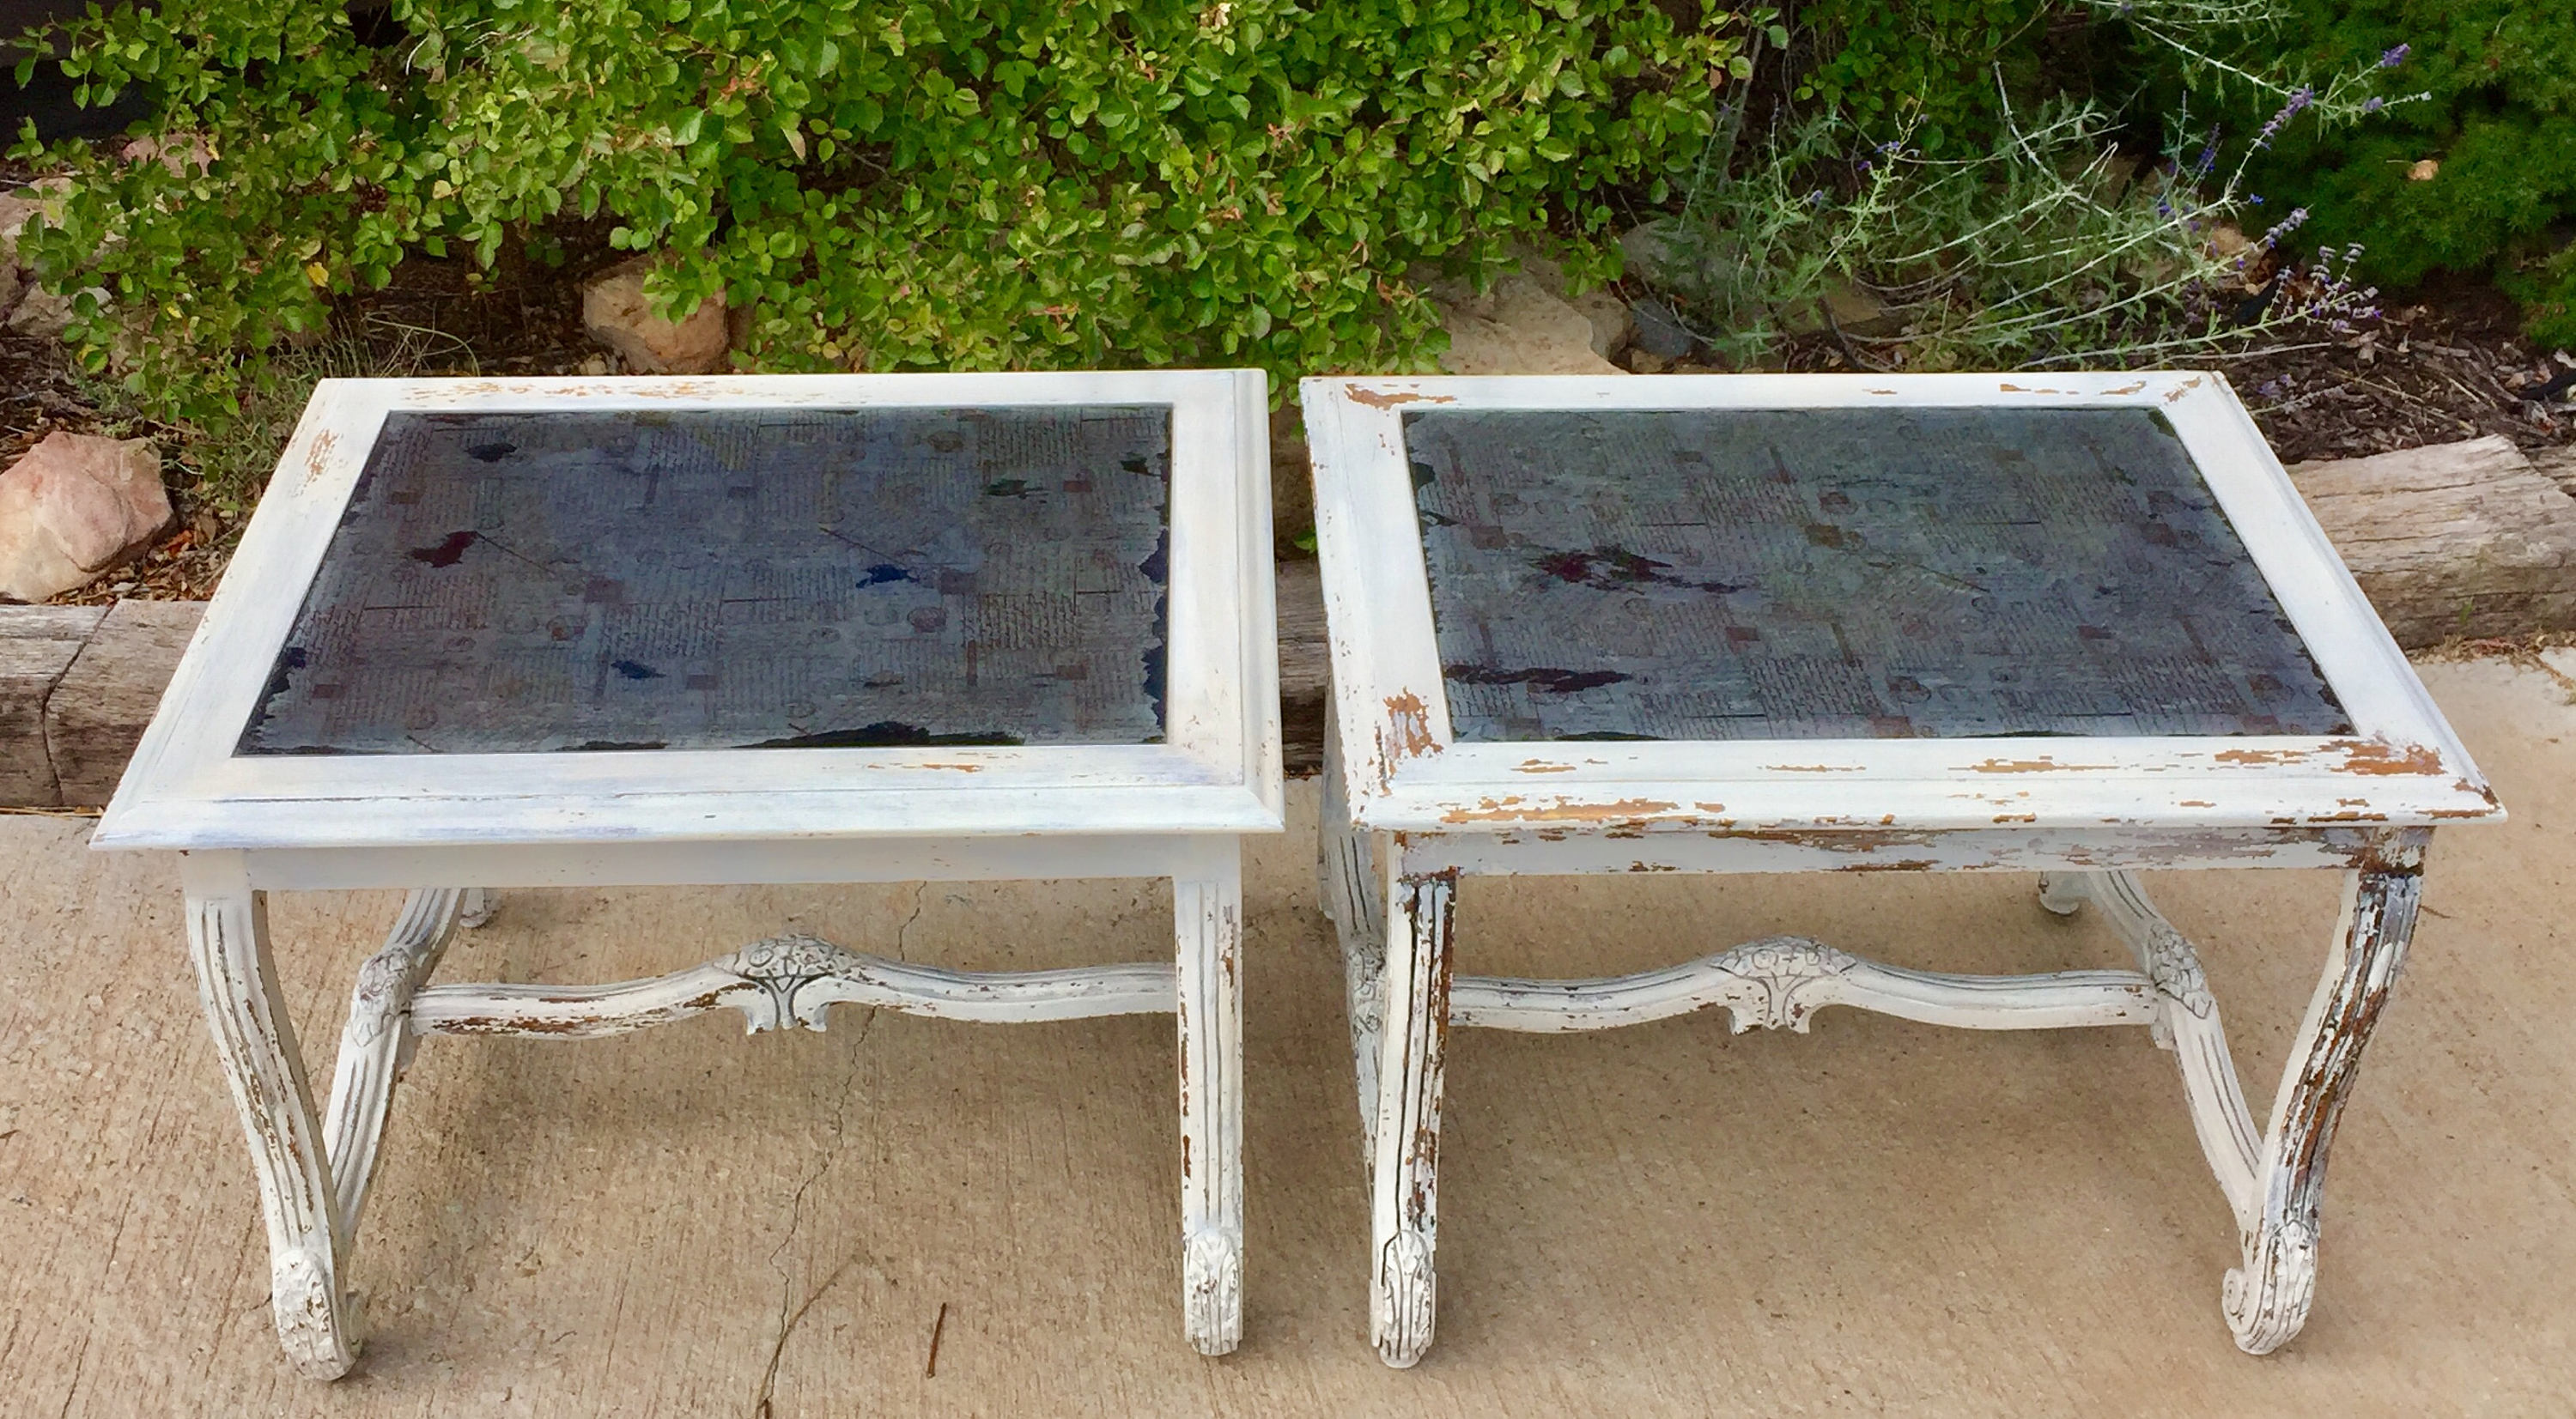 set french country end tables farmhouse nightstands etsy fullxfull accent table wood glass and metal coffee tall thin floor inch high entryway with storage baskets raw kitchen